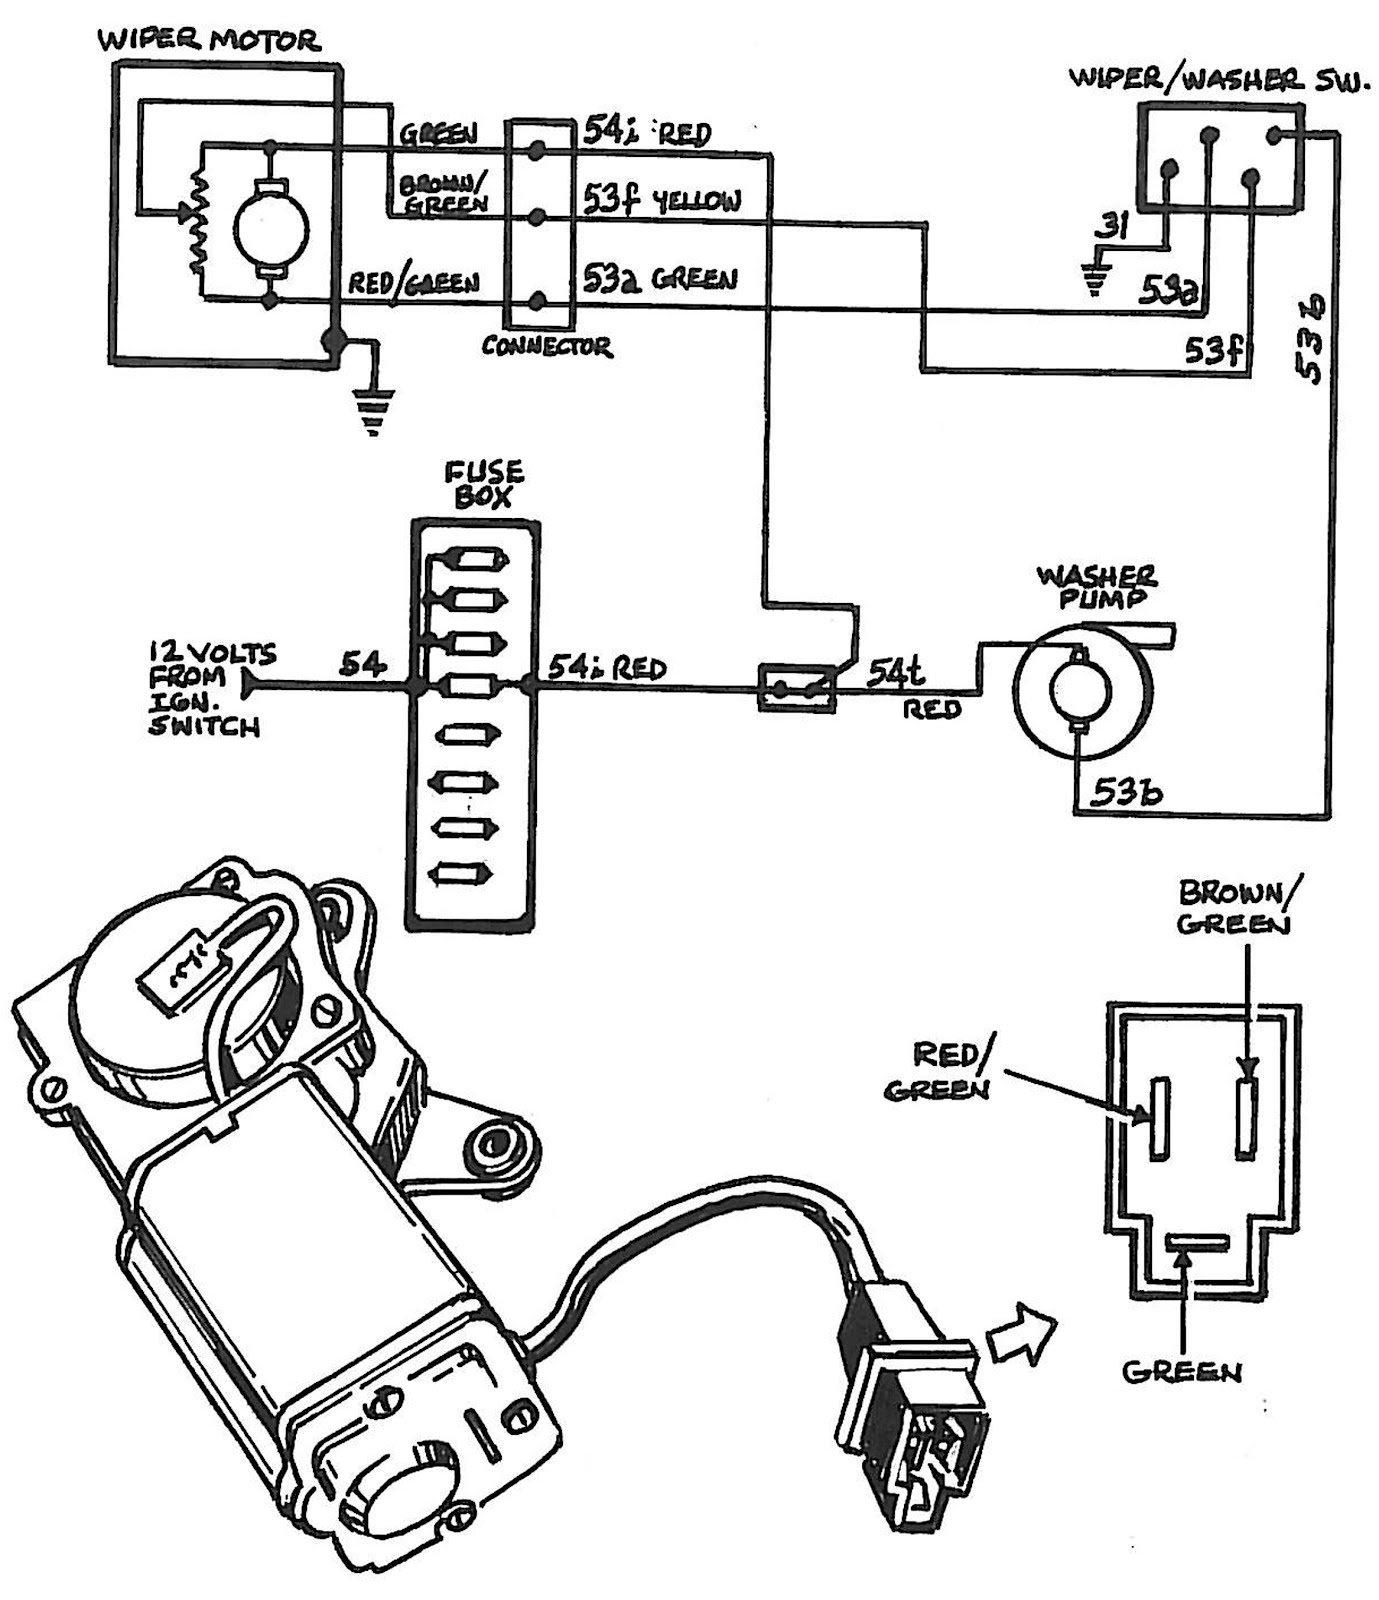 1972 vw beetle wiper motor wiring diagram